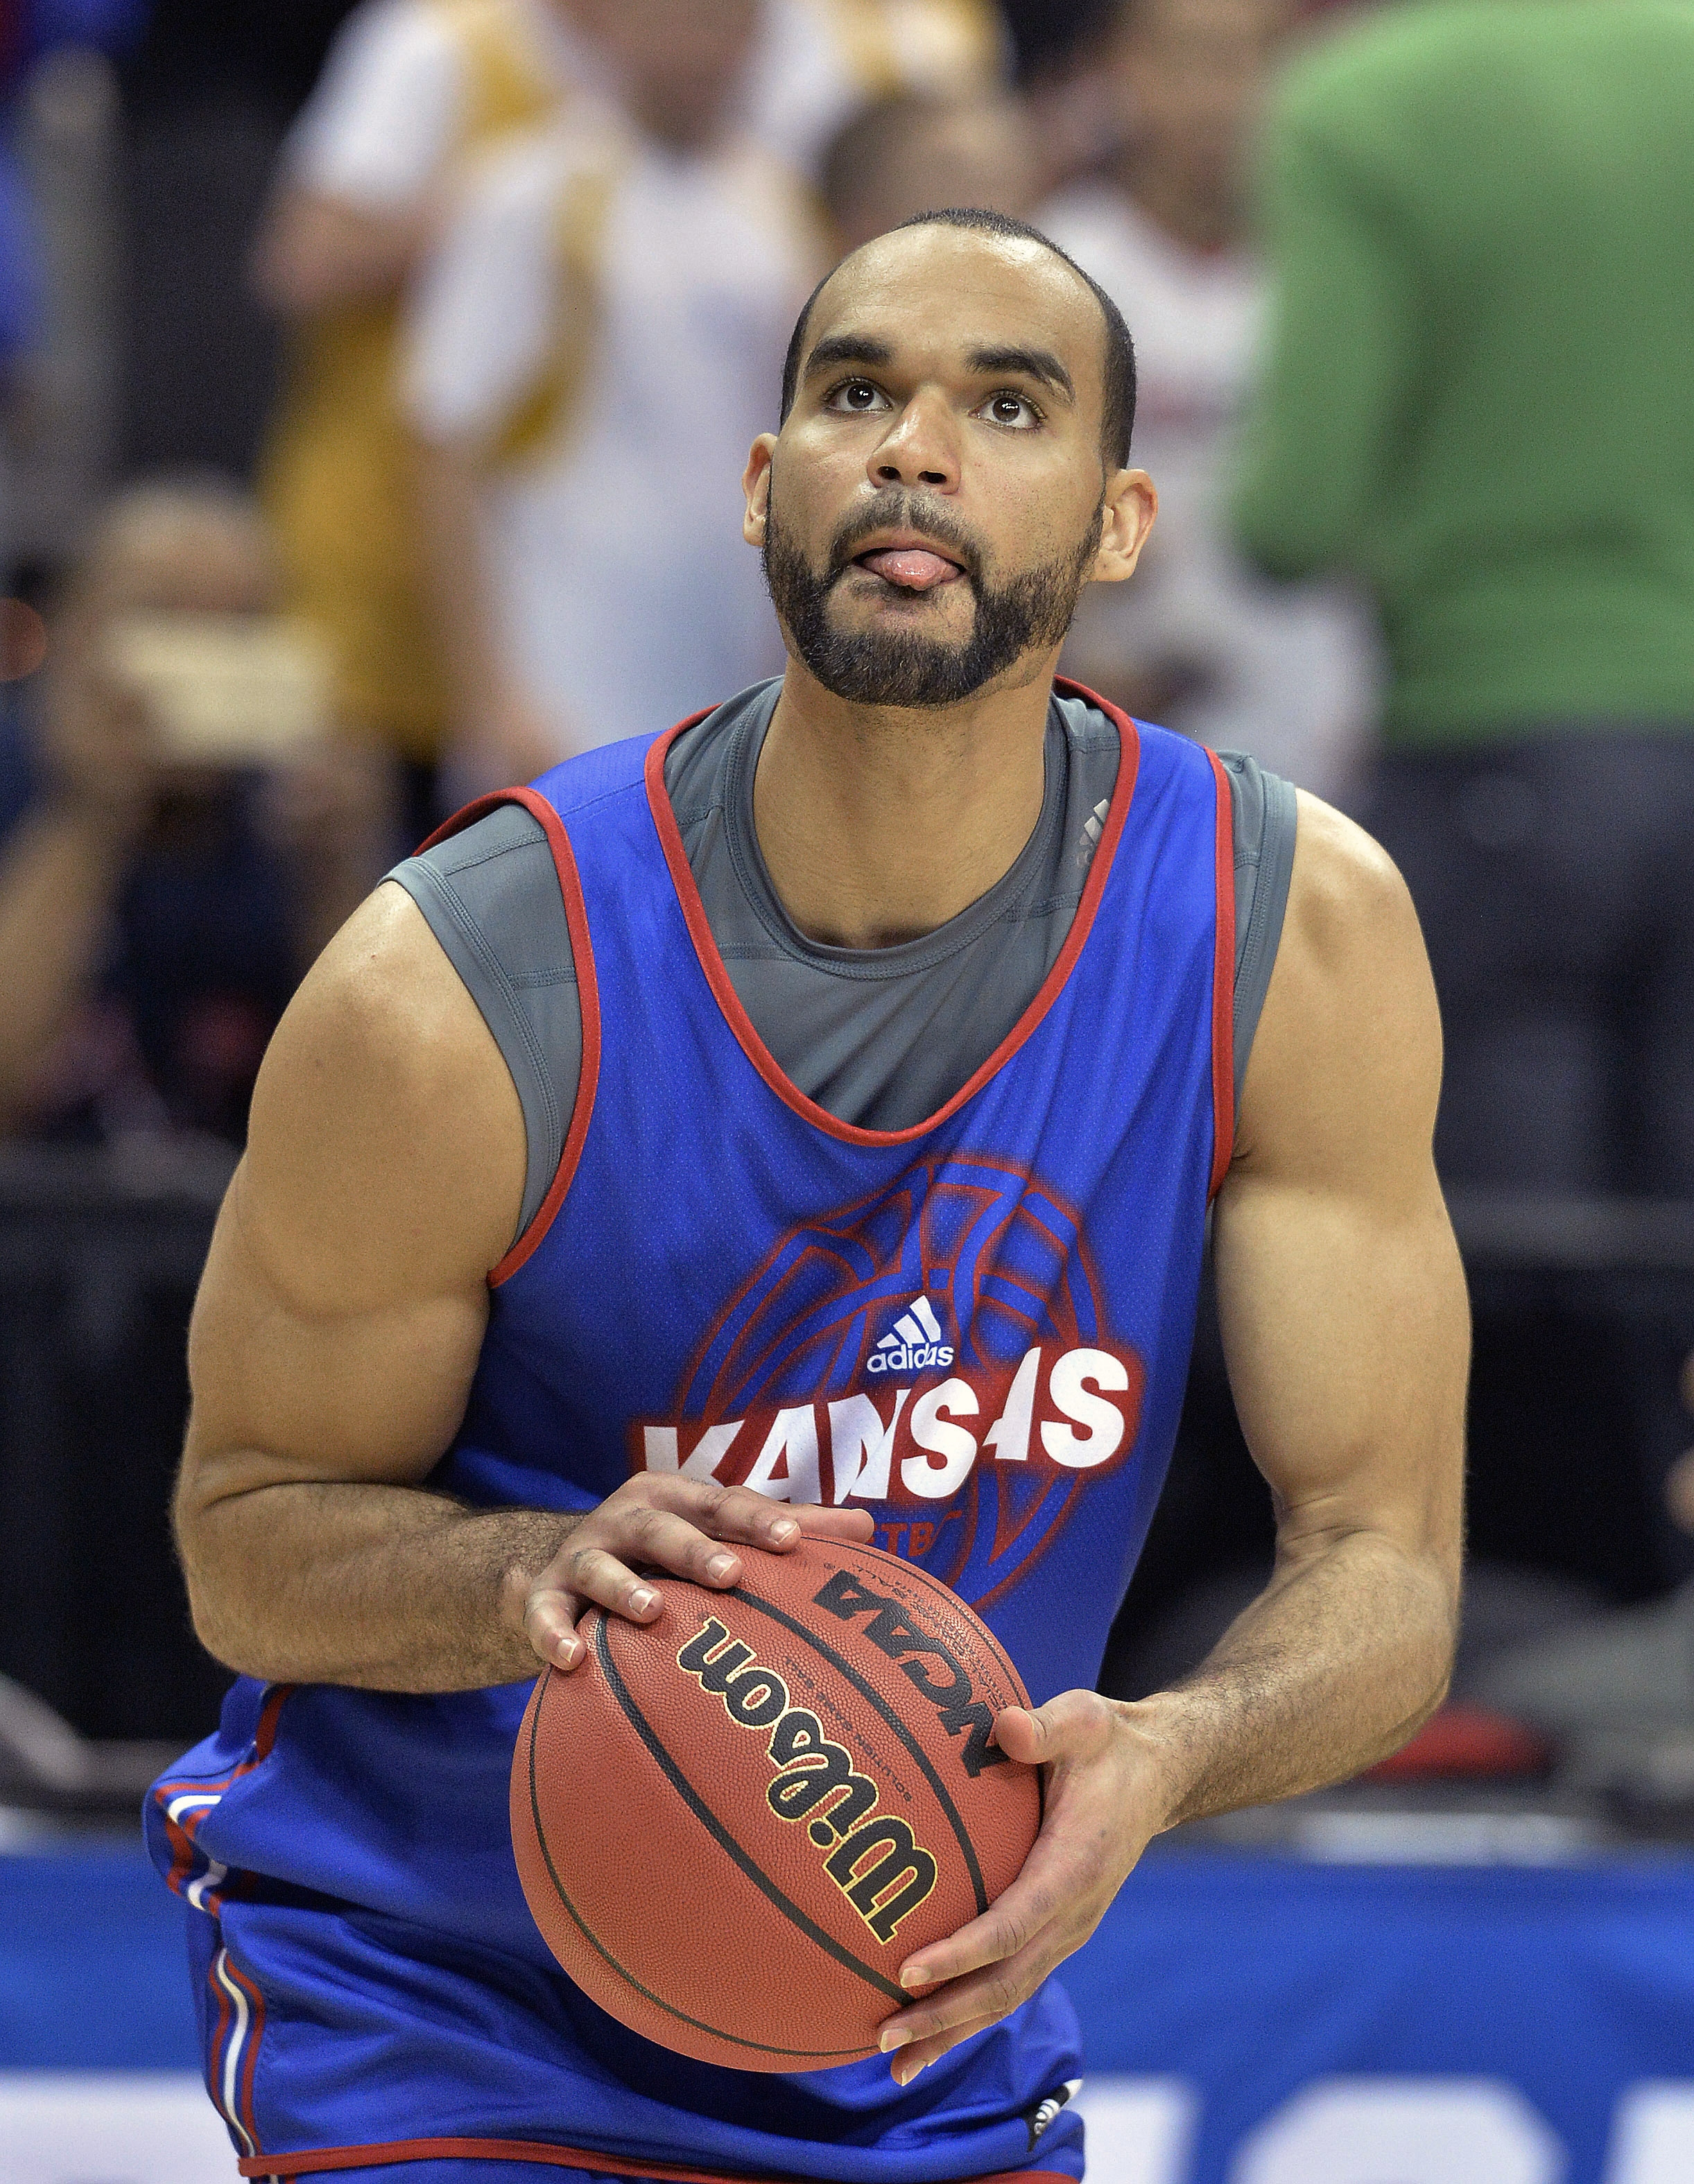 Kansas forward Perry Ellis (34) shoots during a college basketball practice in Louisville, Ky.,  Wednesday, March 23, 2016. Kansas plays Maryland in a regional semifinal game in the NCAA Tournament on Thursday. (AP Photo/Timothy D. Easley)